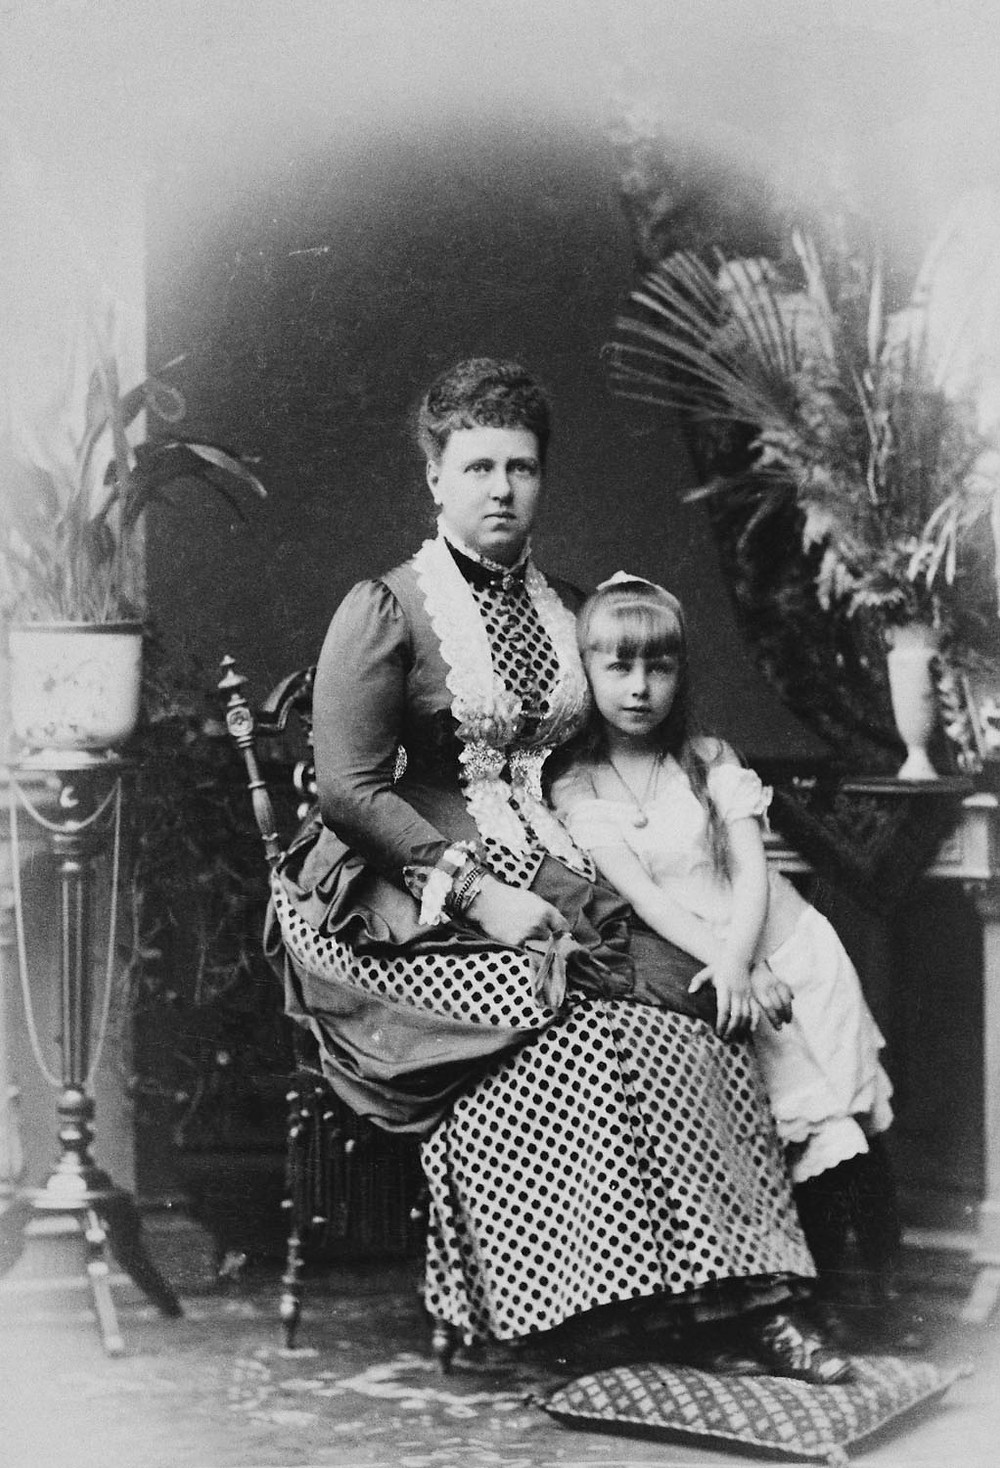 Princess Marie with her mother Marie, Grand Duchess of Edinburgh circa 1887 Royal Collection Trust/(c) Her Majesty Queen Elizabeth II 2018